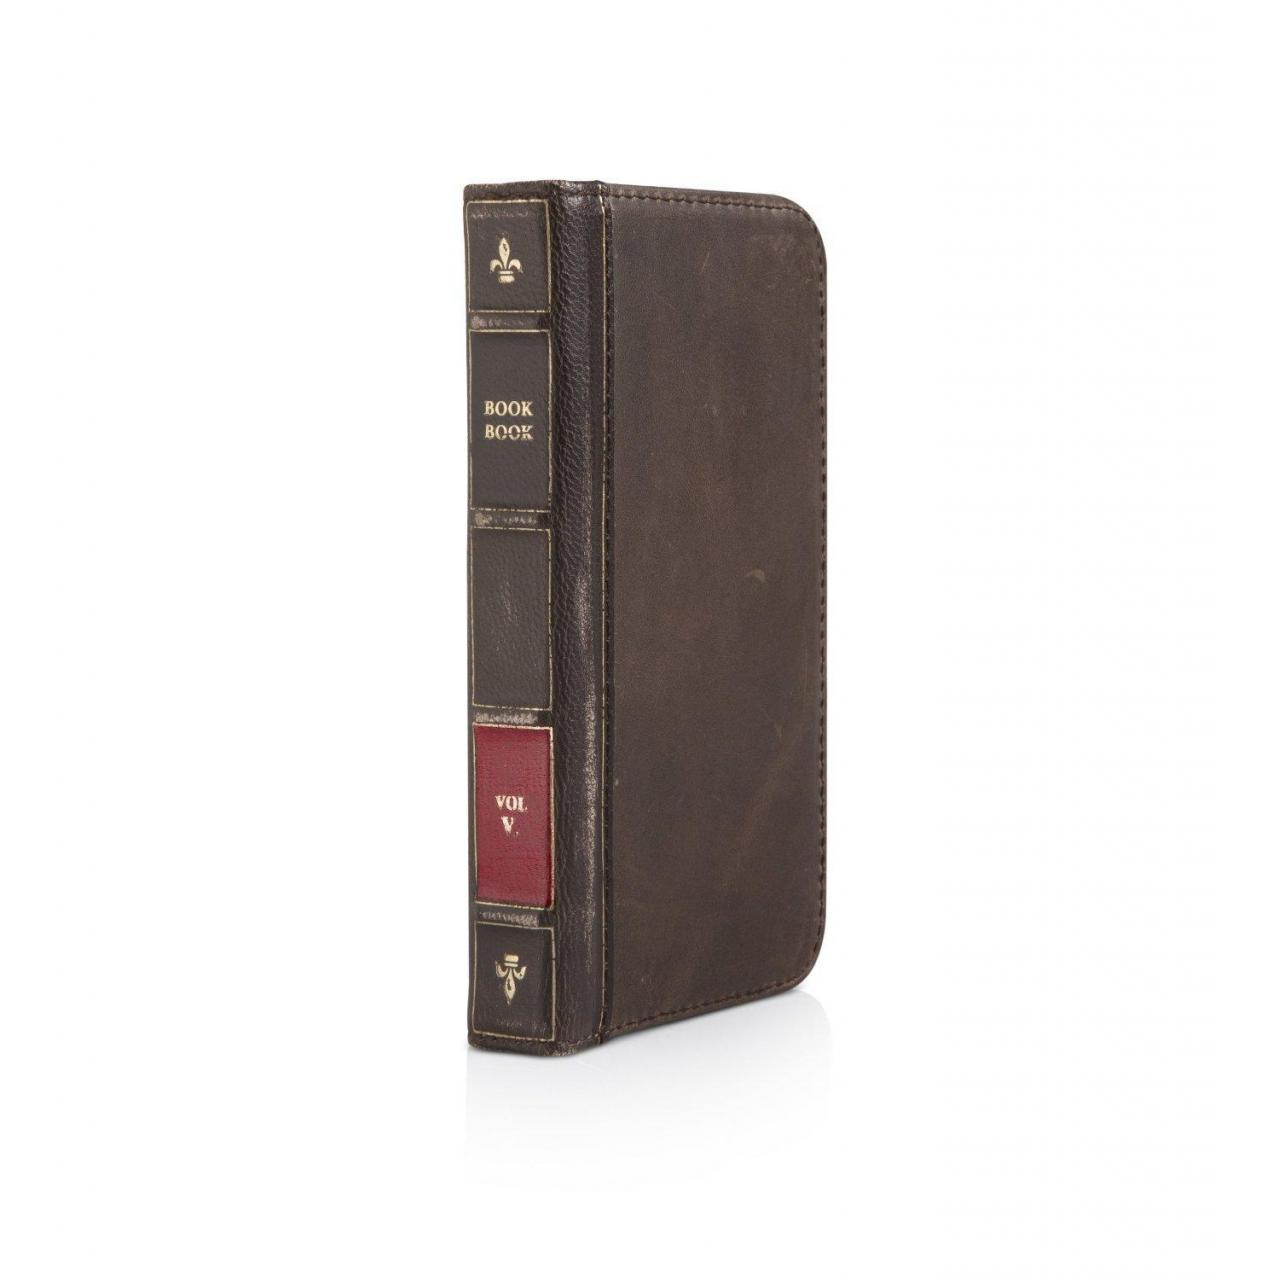 Quality BookBook for iPhone 5 - Vintage leather iPhone case and wallet (vintage brown) for sale